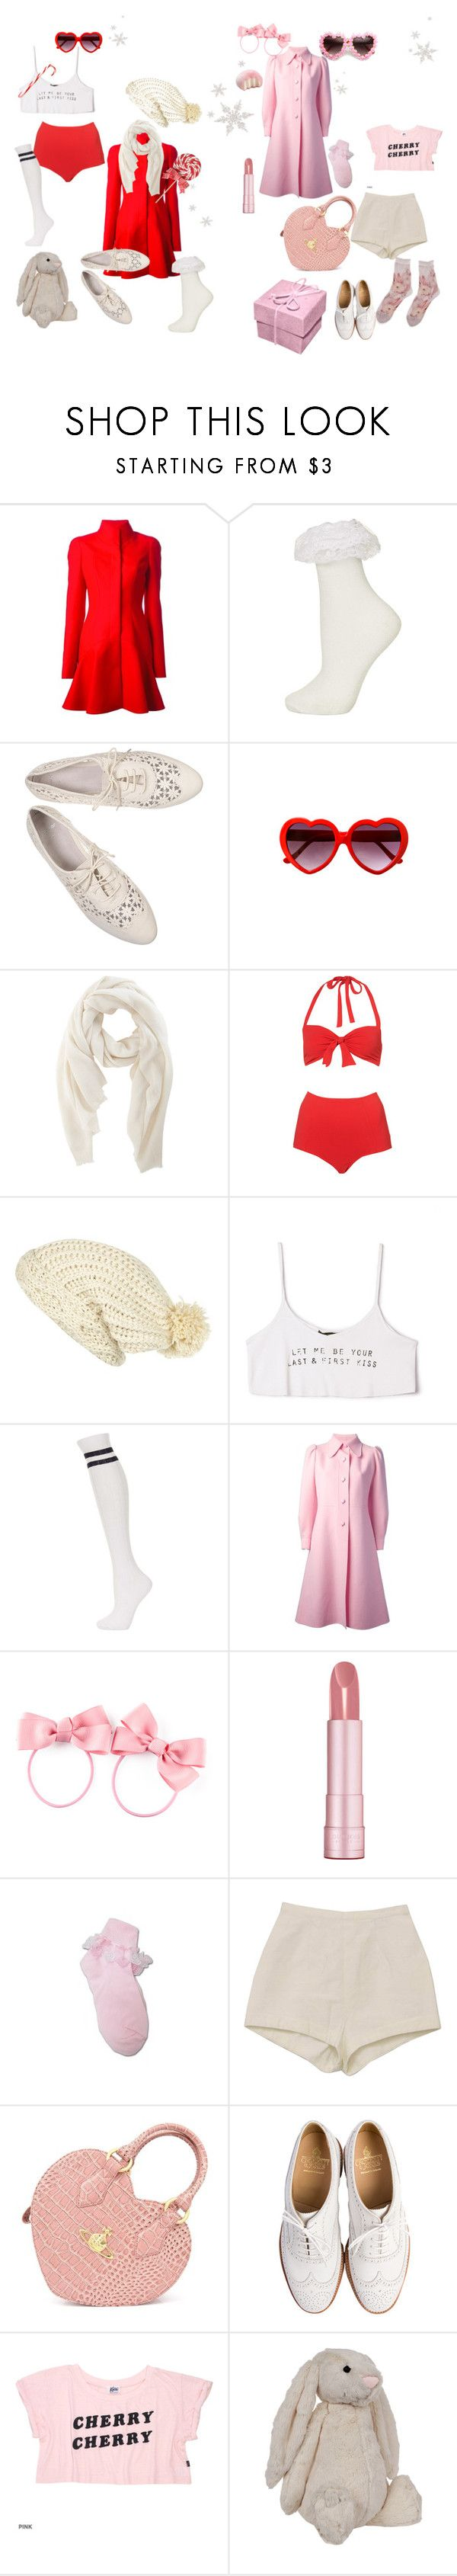 """""""Merry Christmas Nymphets"""" by rabbitcult ❤ liked on Polyvore featuring Alexander McQueen, Topshop, Denis Colomb, River Island, Forever 21, Sartoria Italiana Vintage, H&M, Bourjois, Vivienne Westwood and Crockett & Jones"""